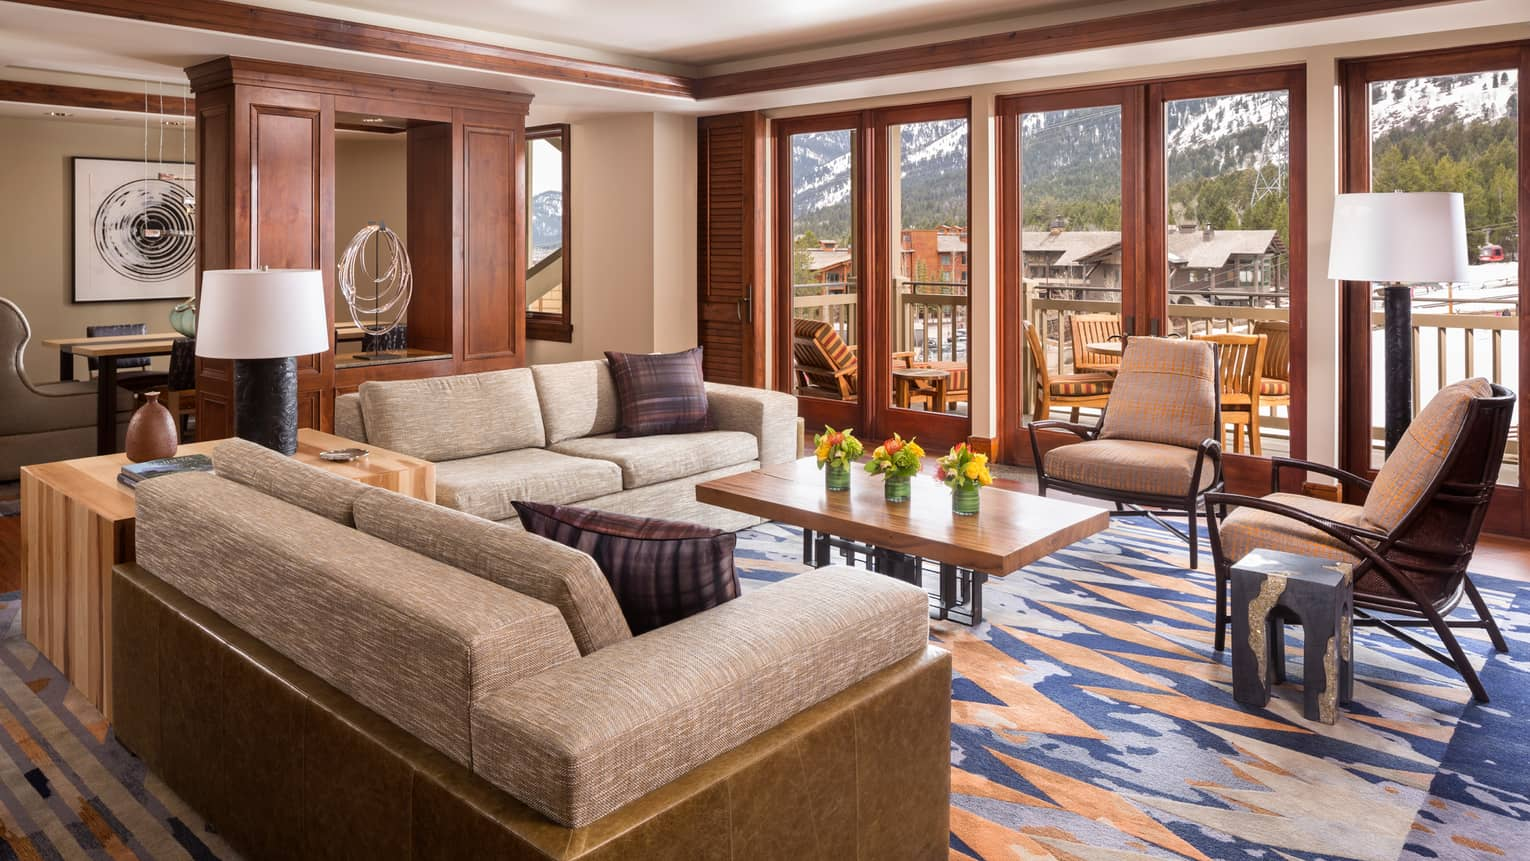 Presidential Suite leather and upholstered sofas, chairs on Midwestern-style rug by glass patio doors